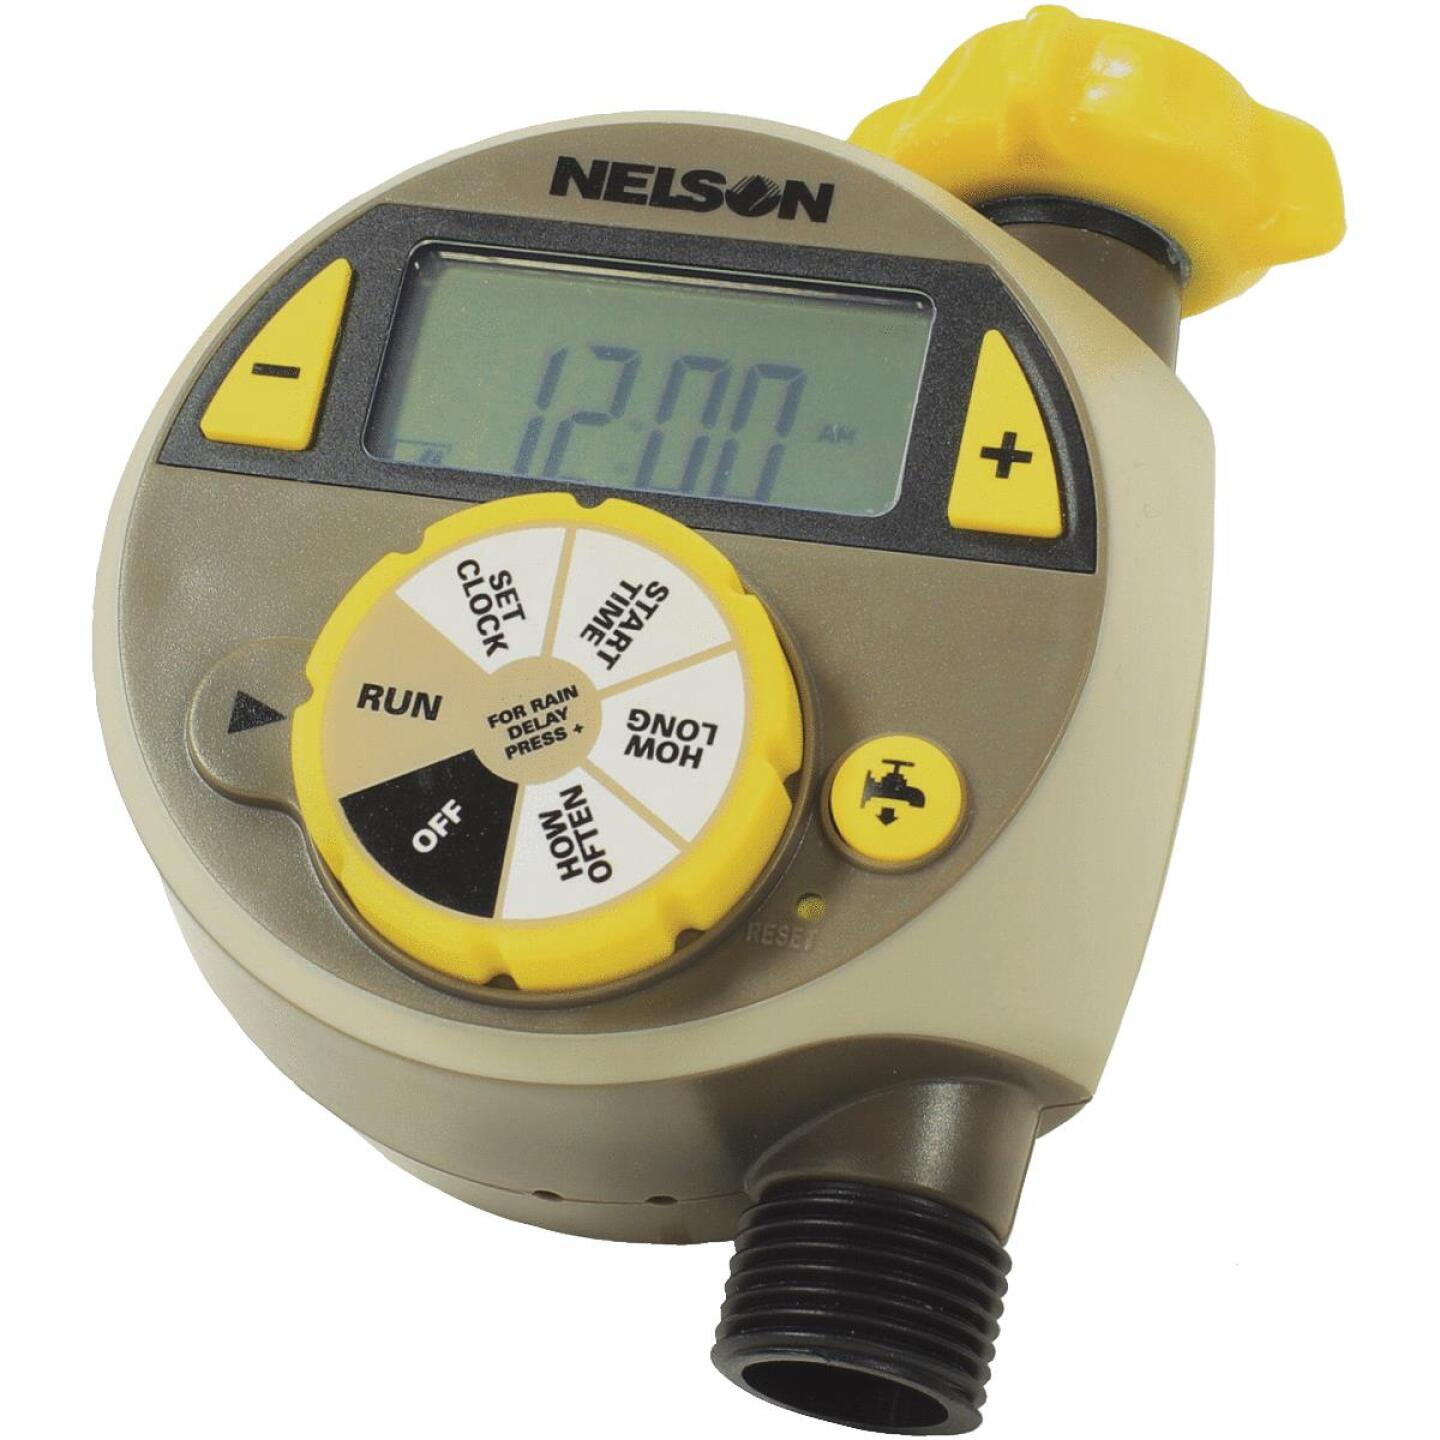 Nelson Electronic 1-Zone Water Timer Image 1